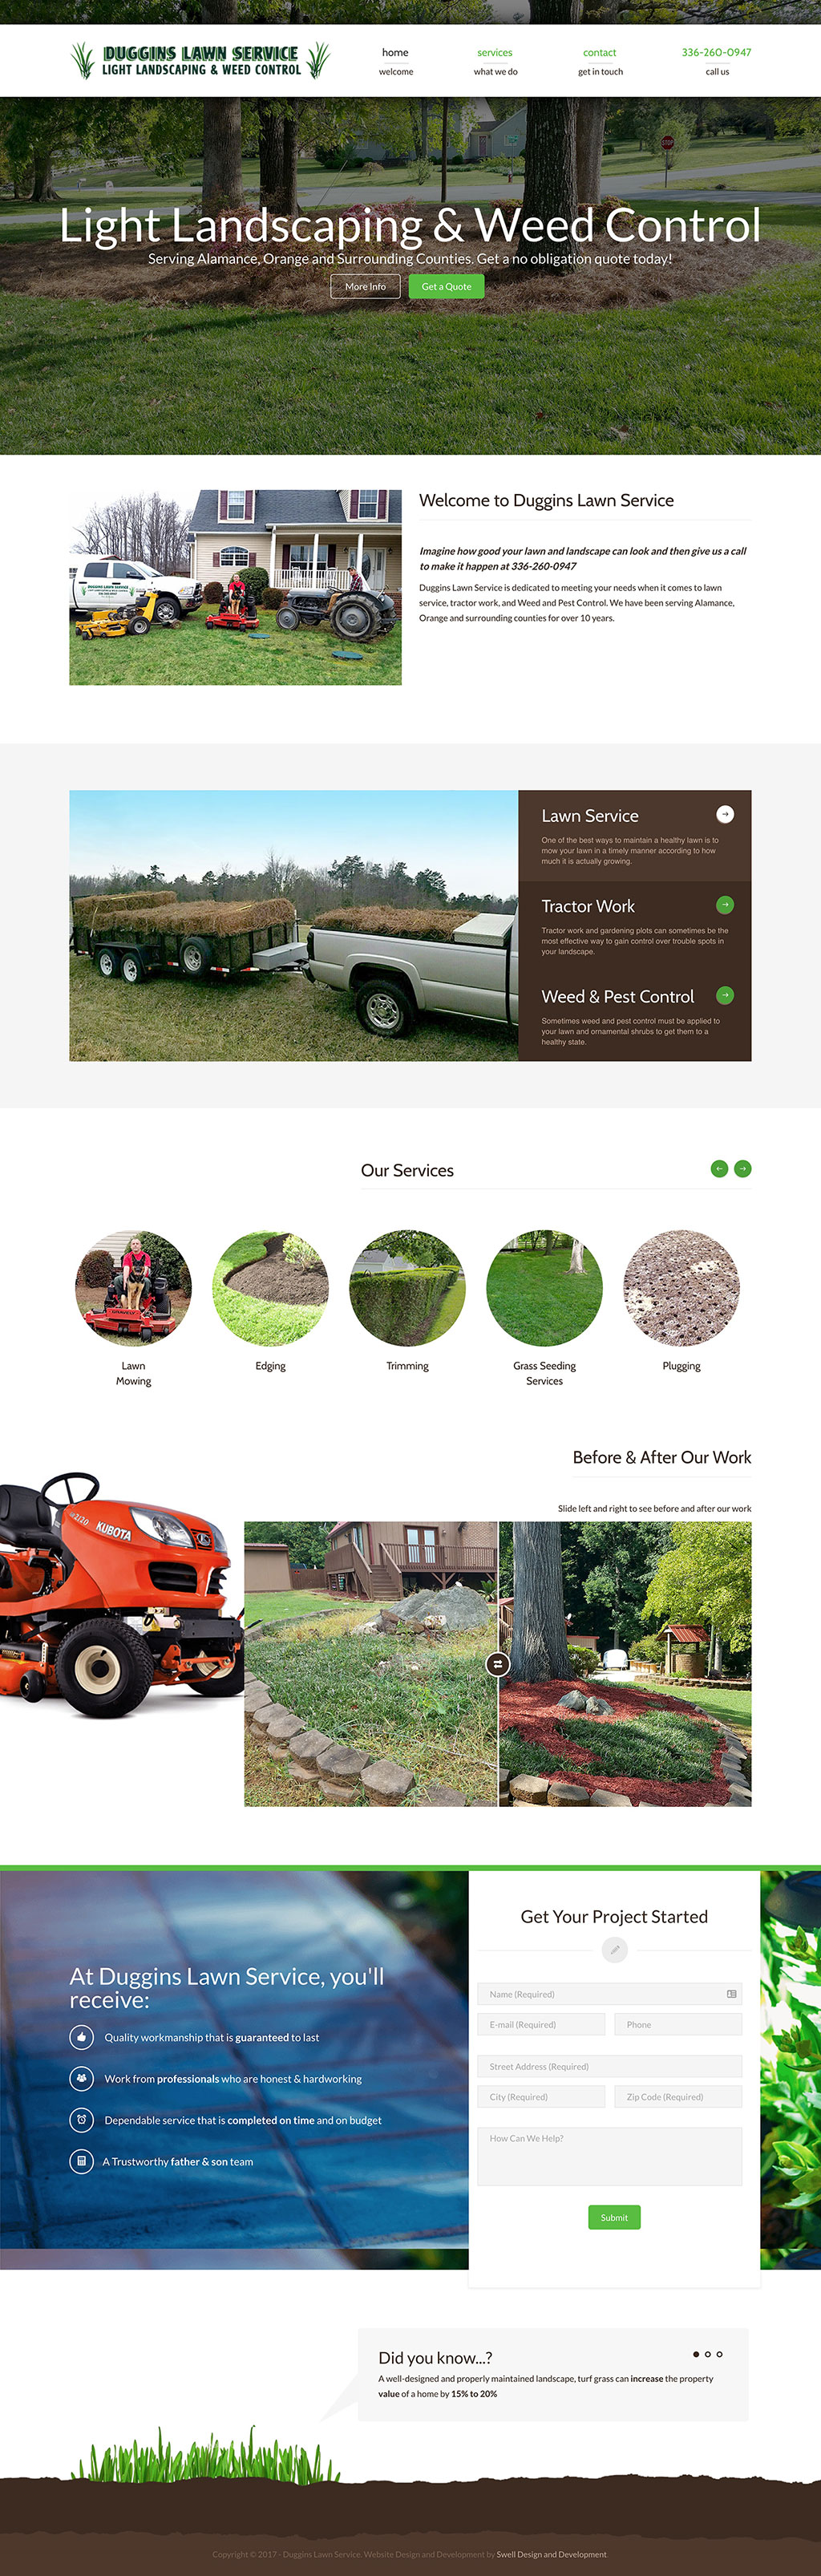 Duggins Lawn Service Home Page